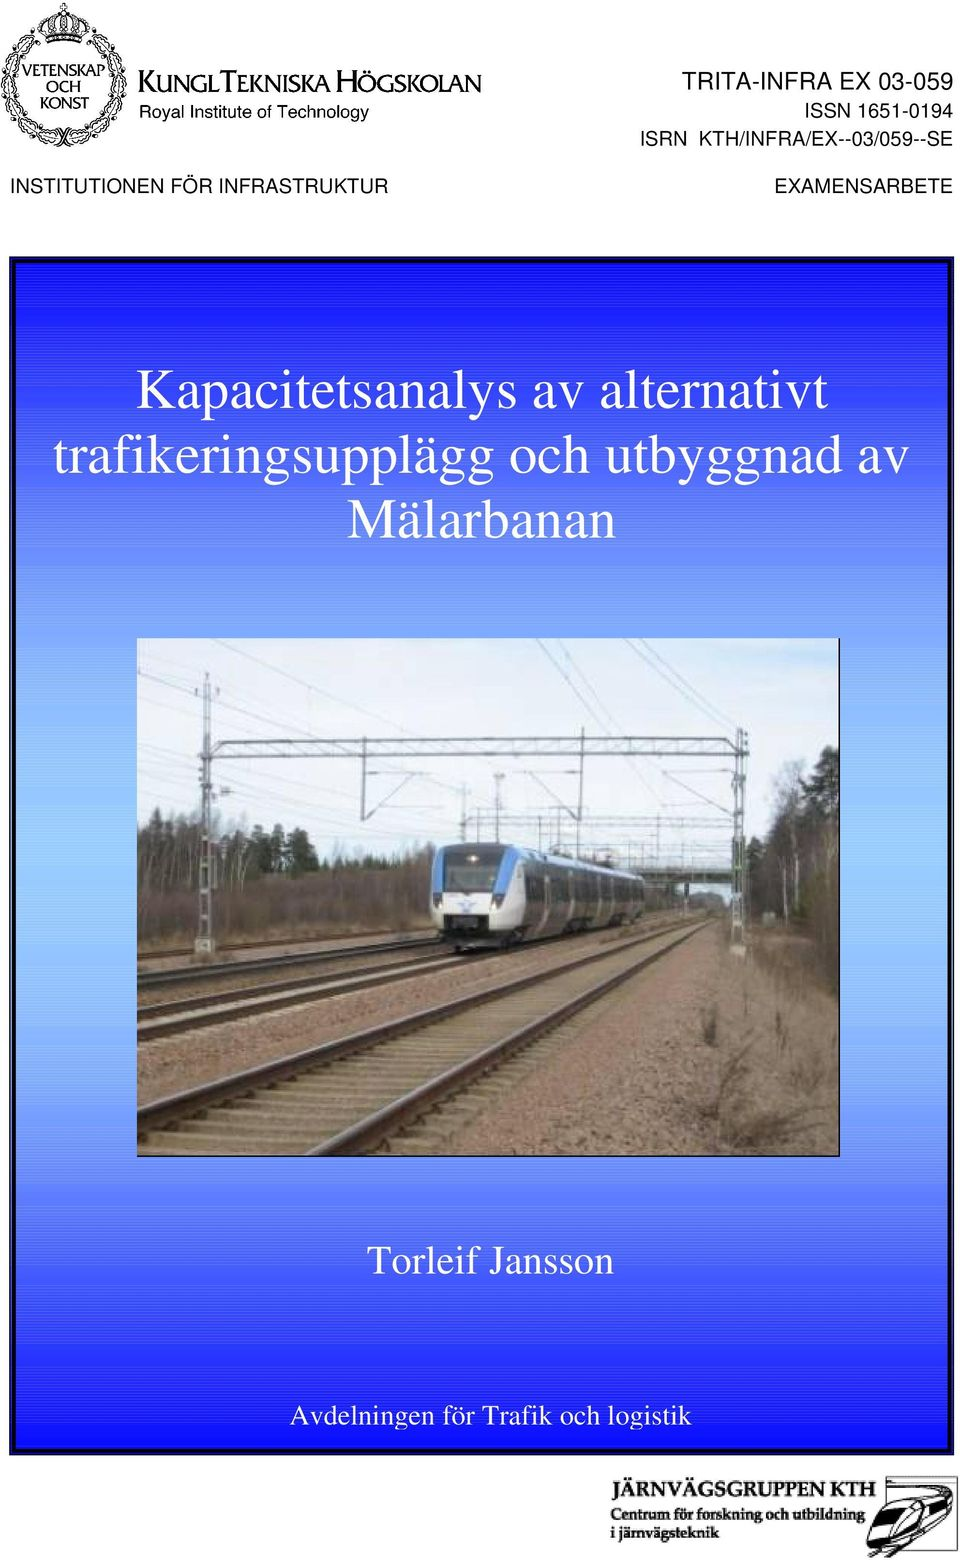 EXAMENSARBETE Kapacitetsanalys av alternativt